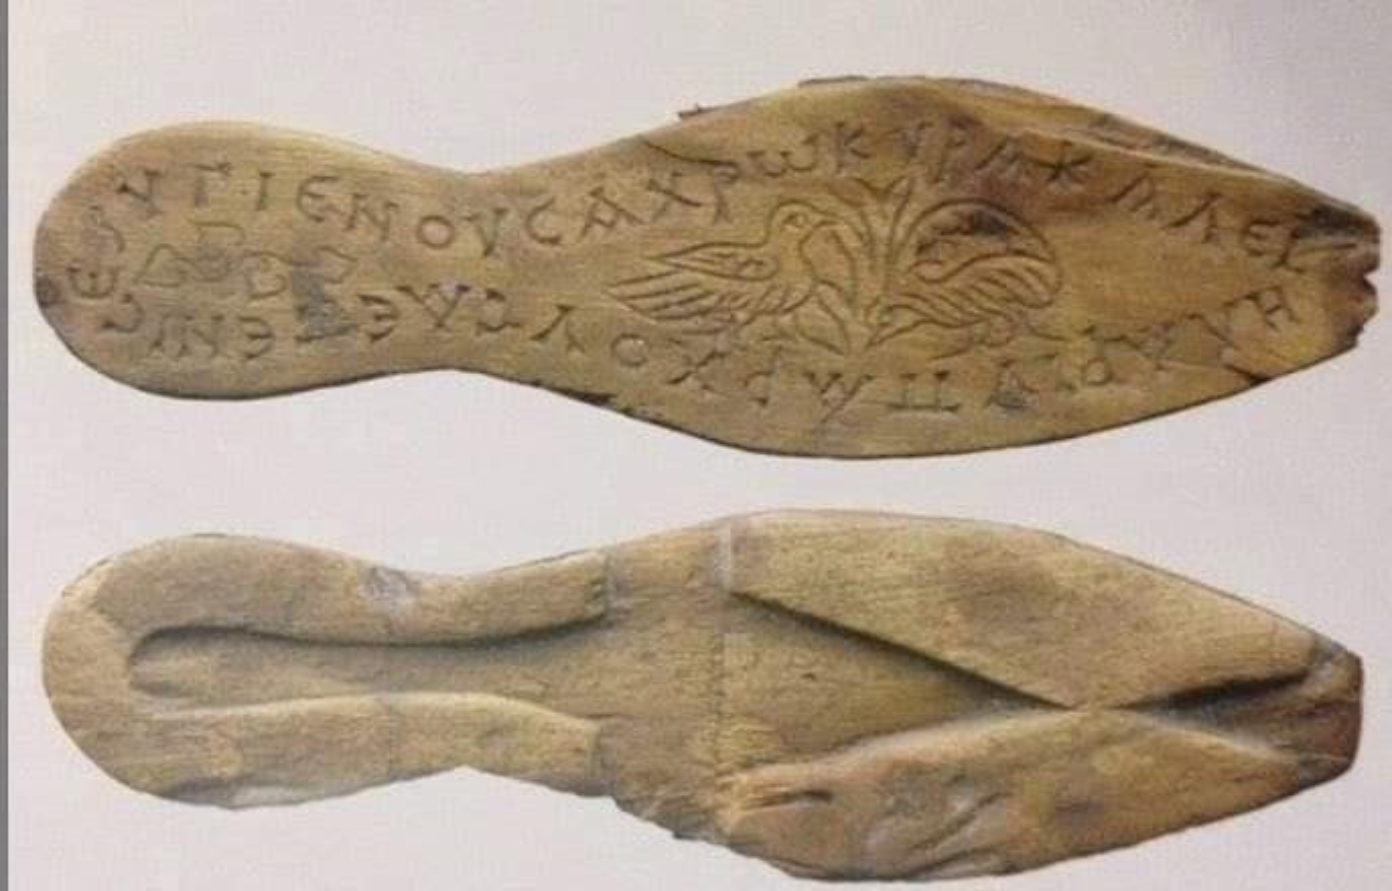 The 1,500-Year-Old Byzantine Sandals with Sweet Message in Greek